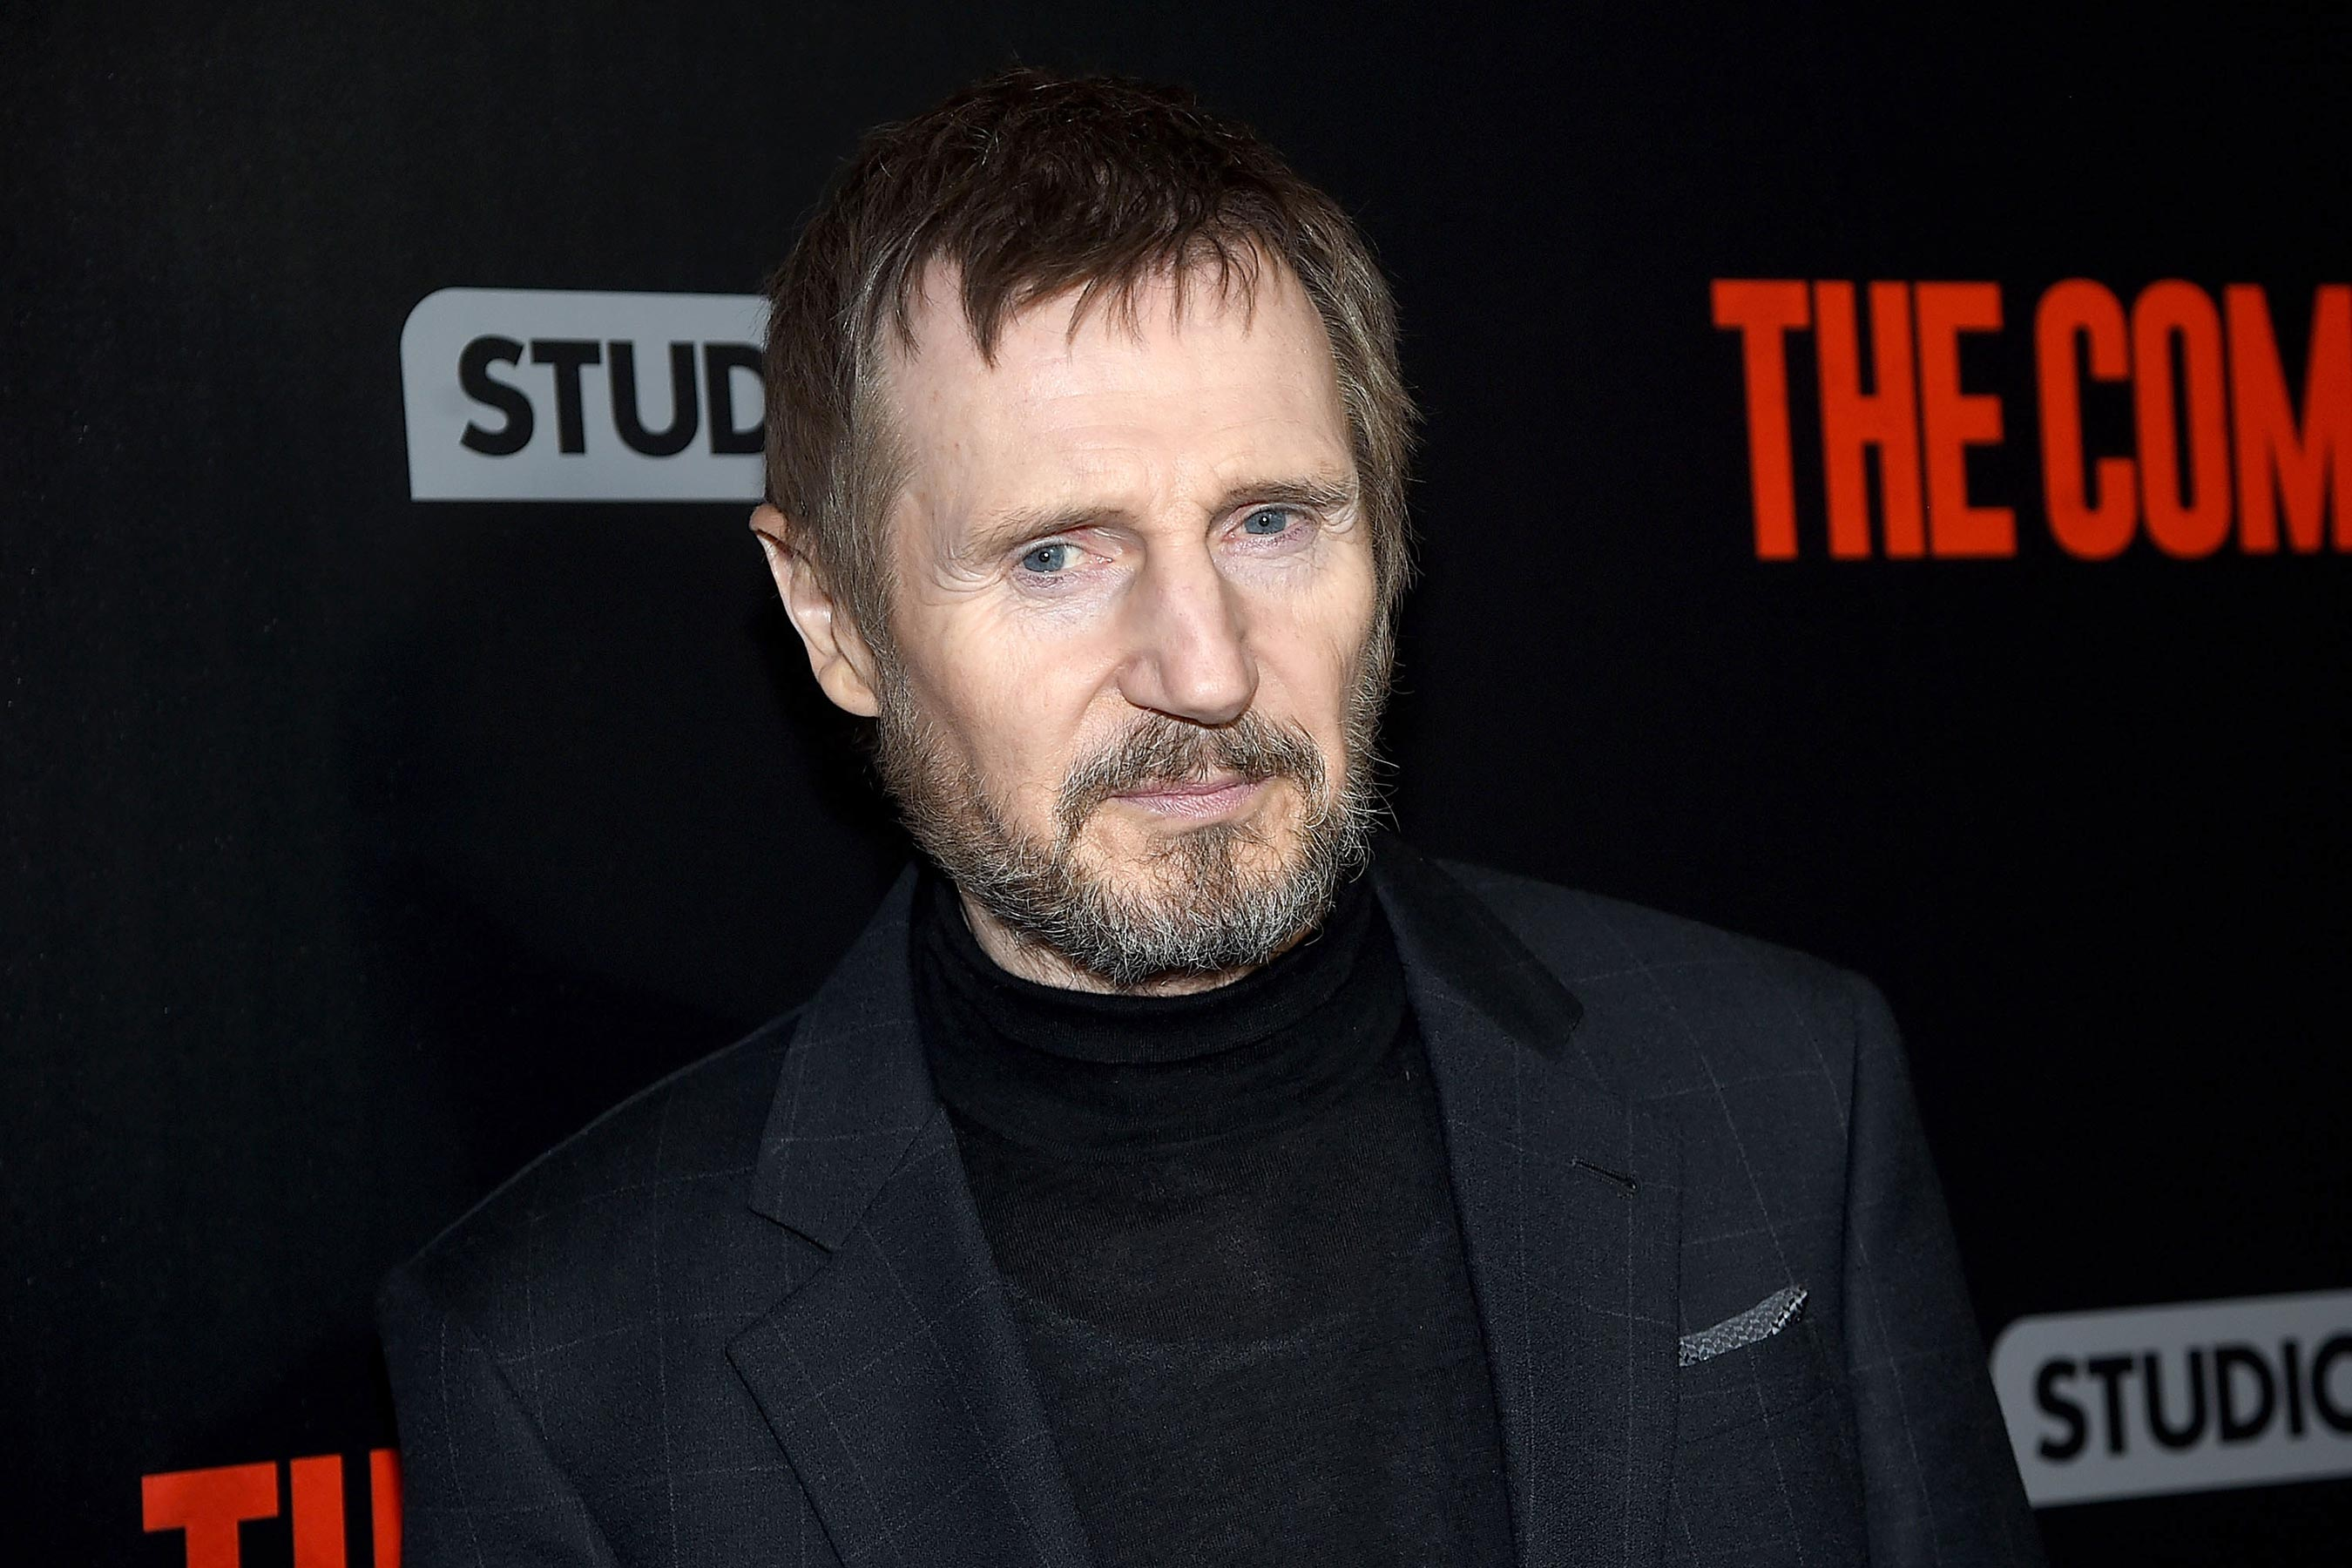 Liam Neeson says the gender pay gap is 'f—ing disgraceful'